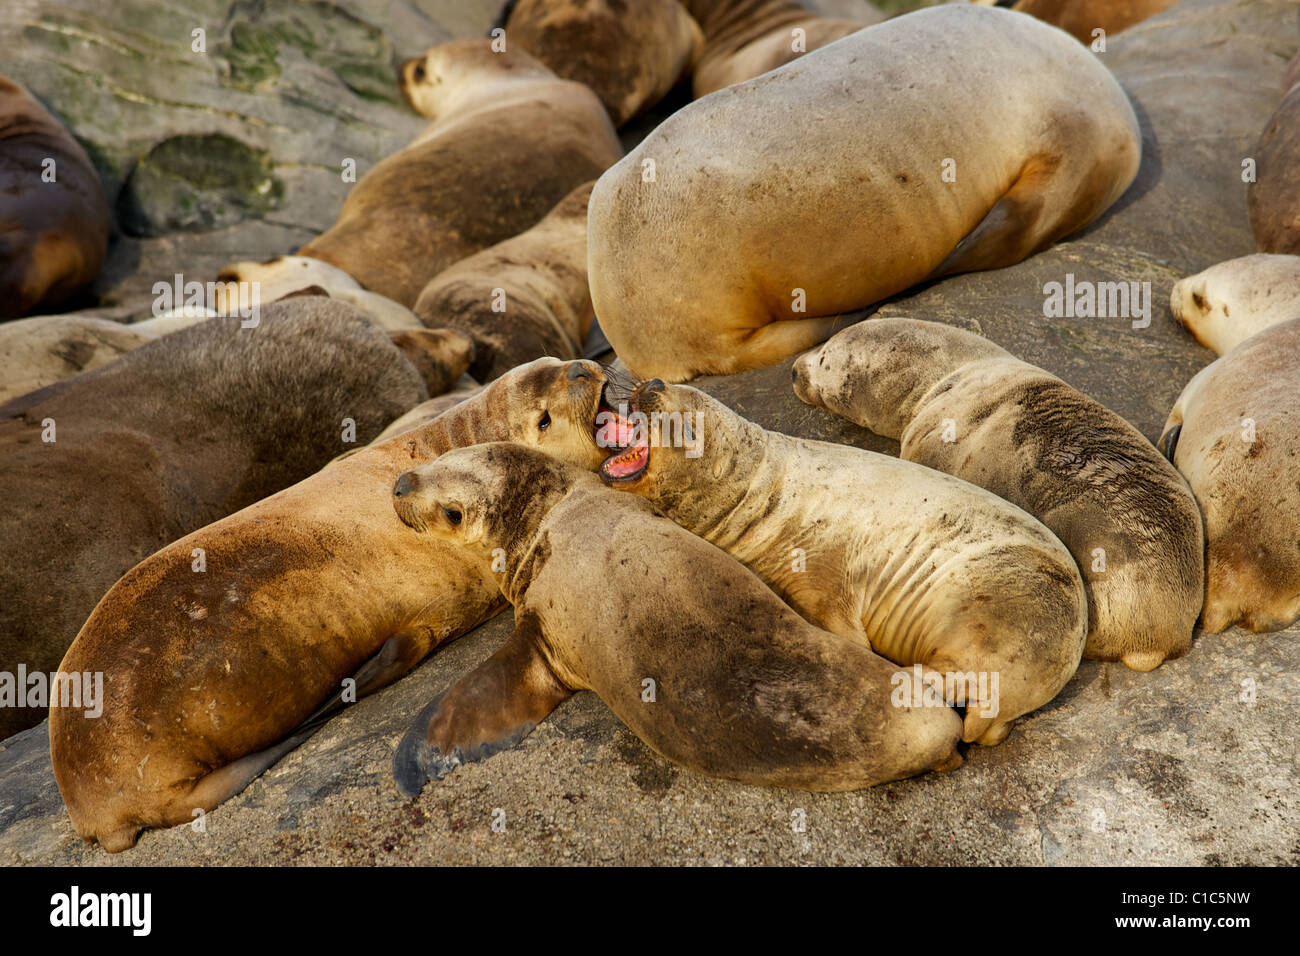 Sea lions relaxing on rocks. - Stock Image